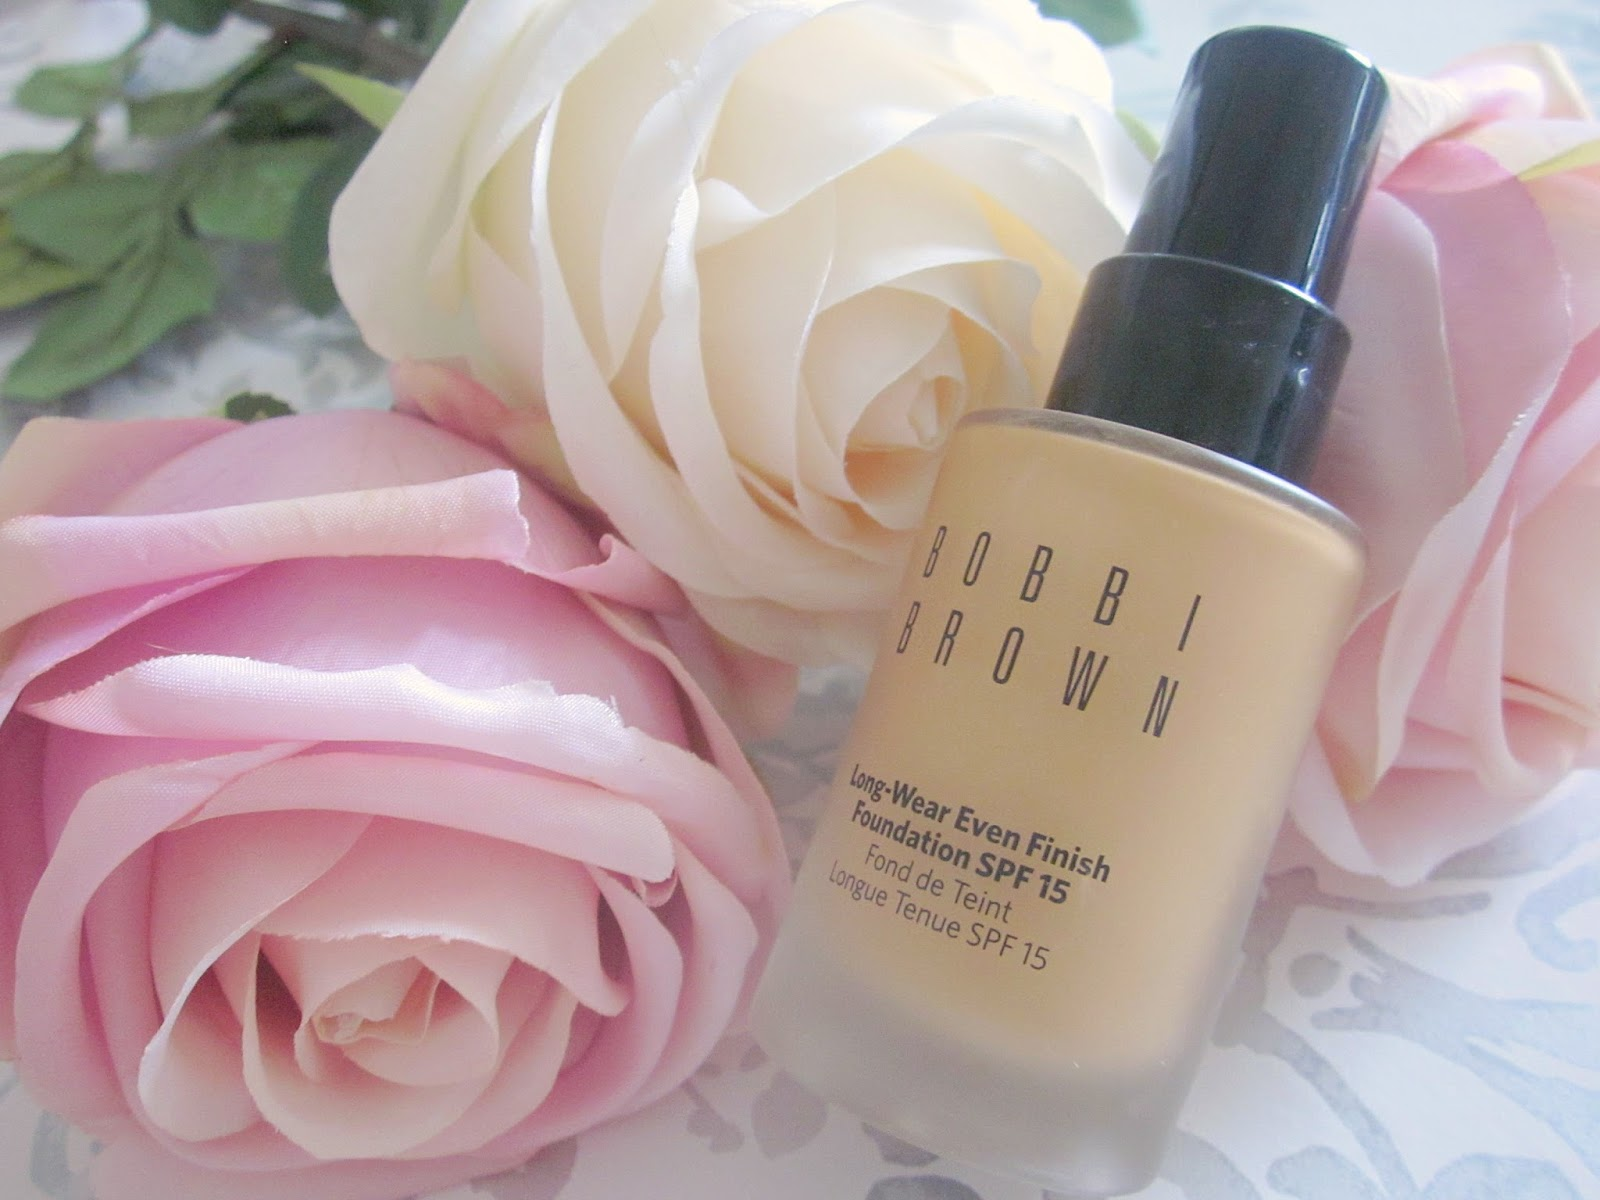 Bobbi Brown longwear foundation warm natural